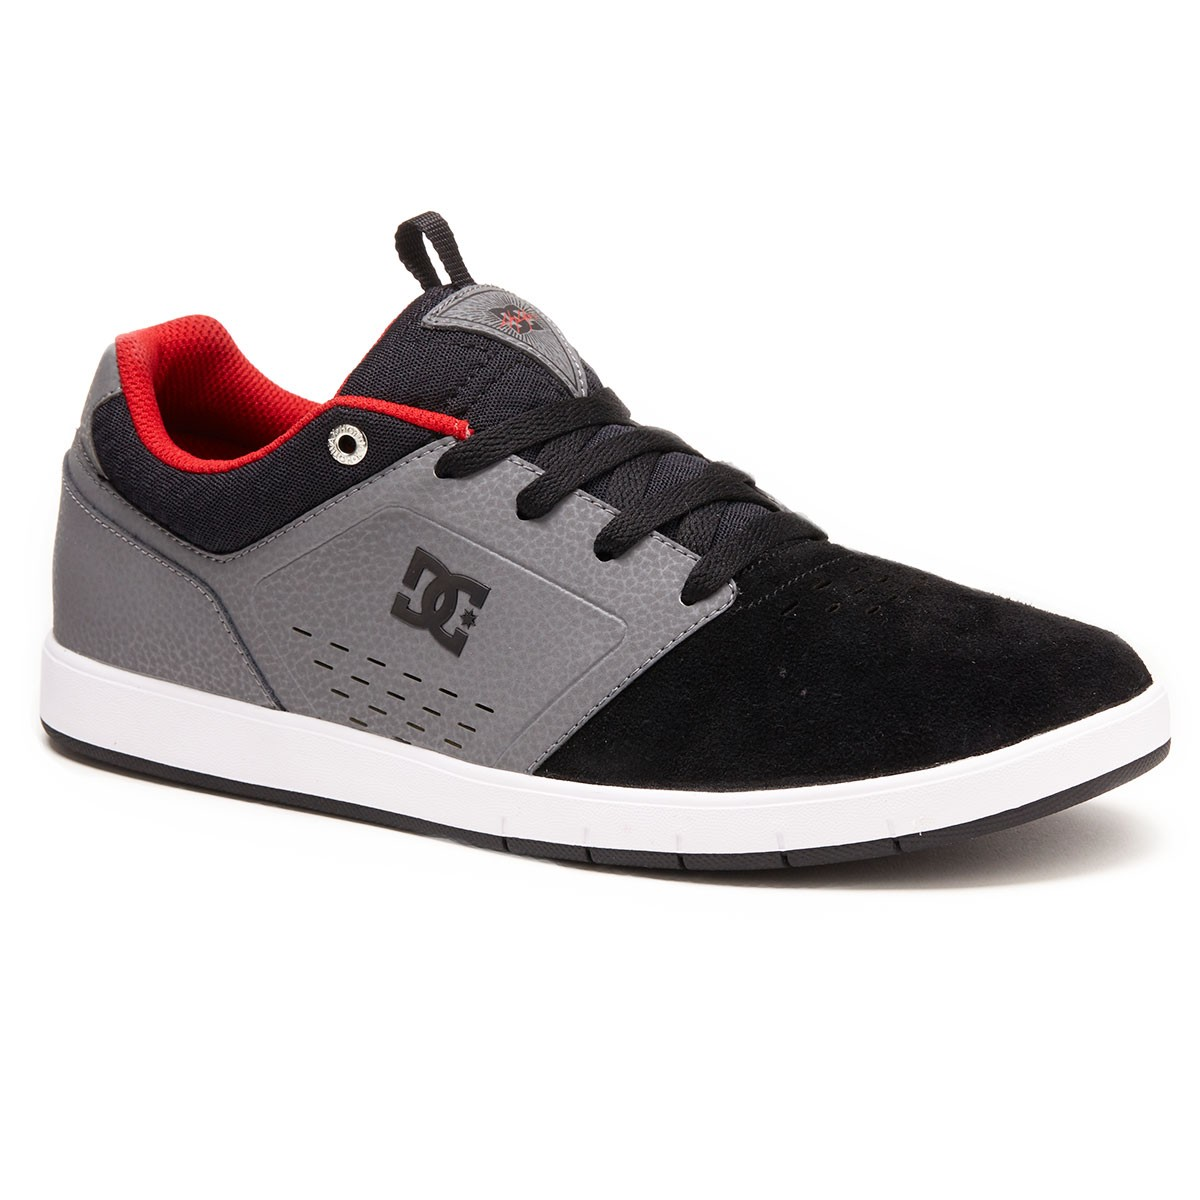 DC Cole Signature Shoes - Grey/Black/Red - 9.5